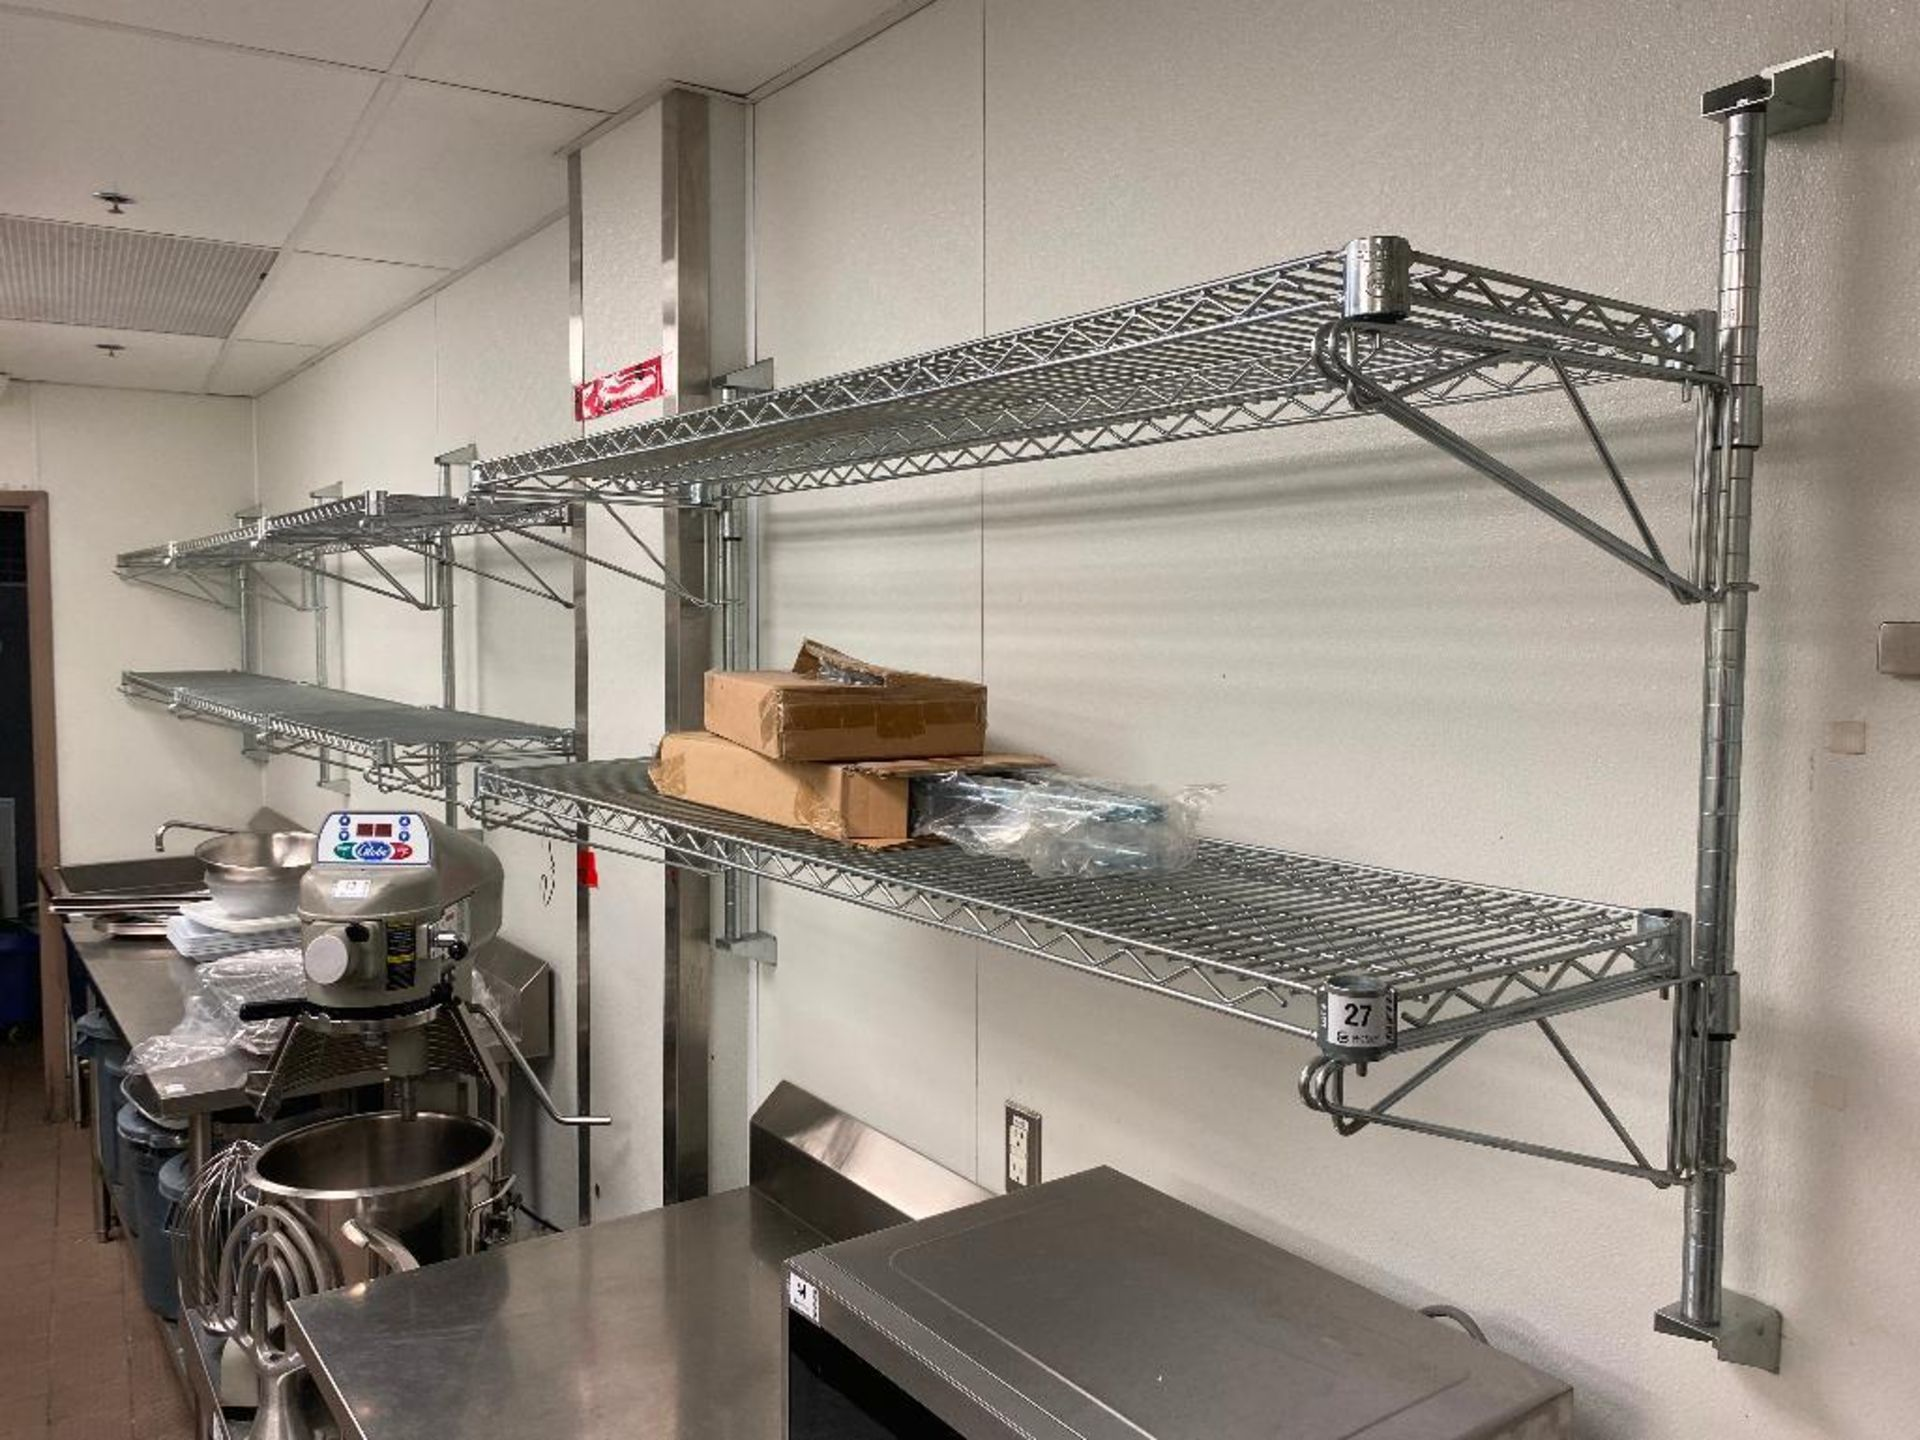 (8) CHROME WIRE WALL MOUNTED SHELVES, ASSORTED SIZES - NOTE: REQUIRES REMOVAL FROM WALL, PLEASE INSP